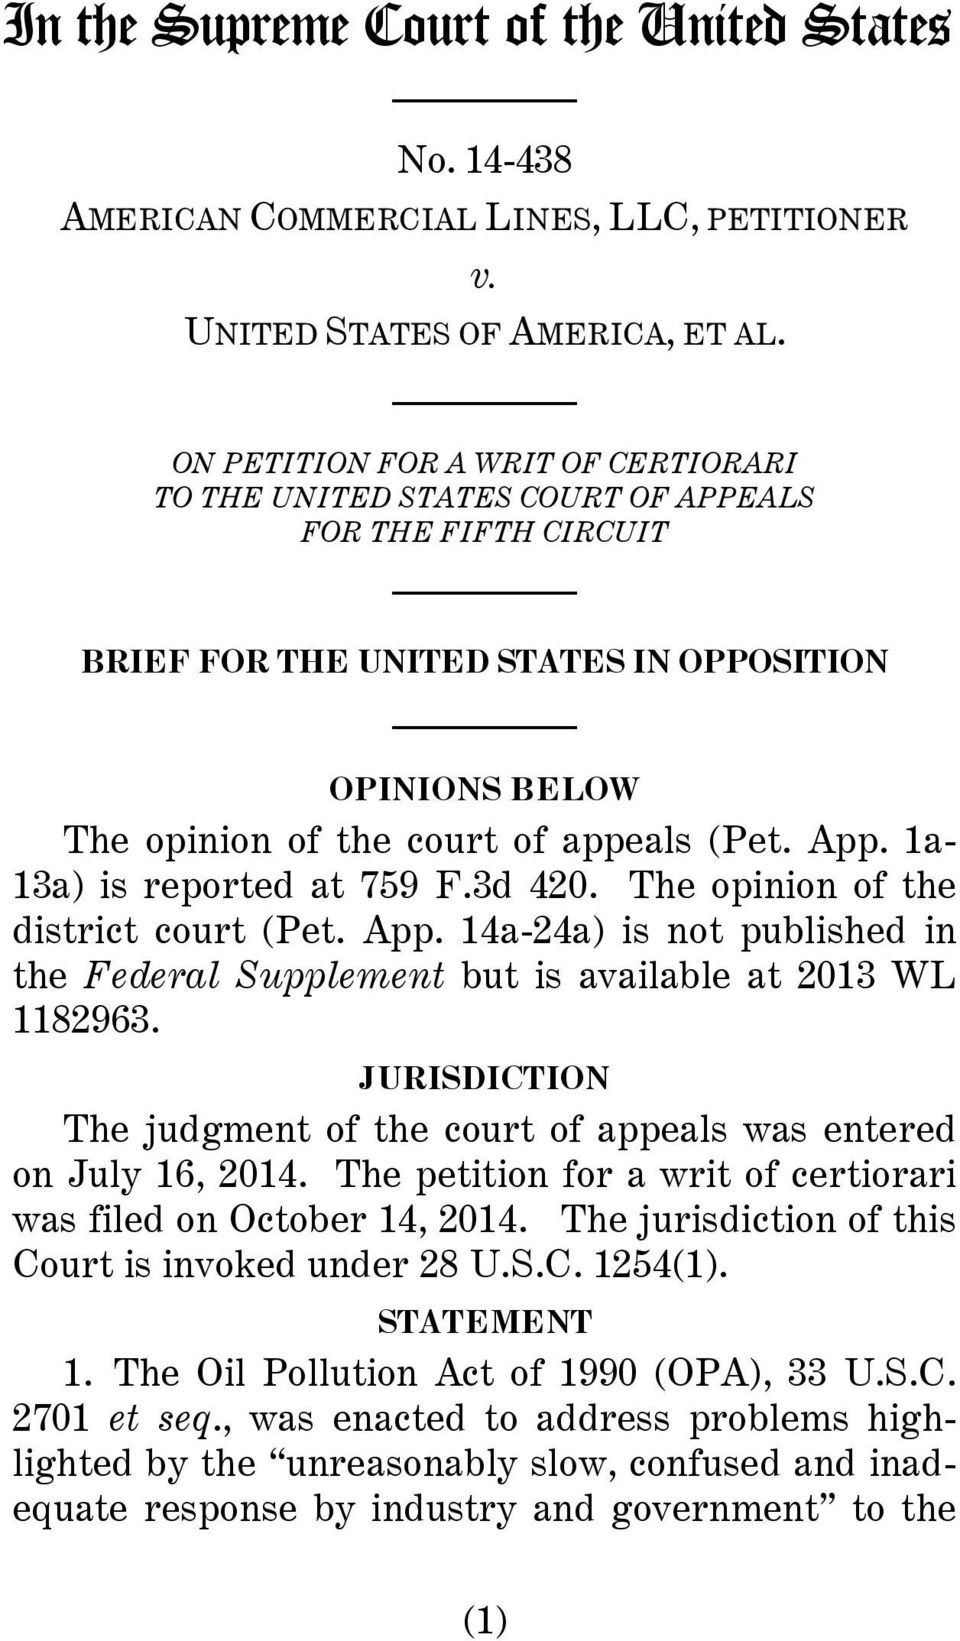 1a- 13a) is reported at 759 F.3d 420. The opinion of the district court (Pet. App. 14a-24a) is not published in the Federal Supplement but is available at 2013 WL 1182963.